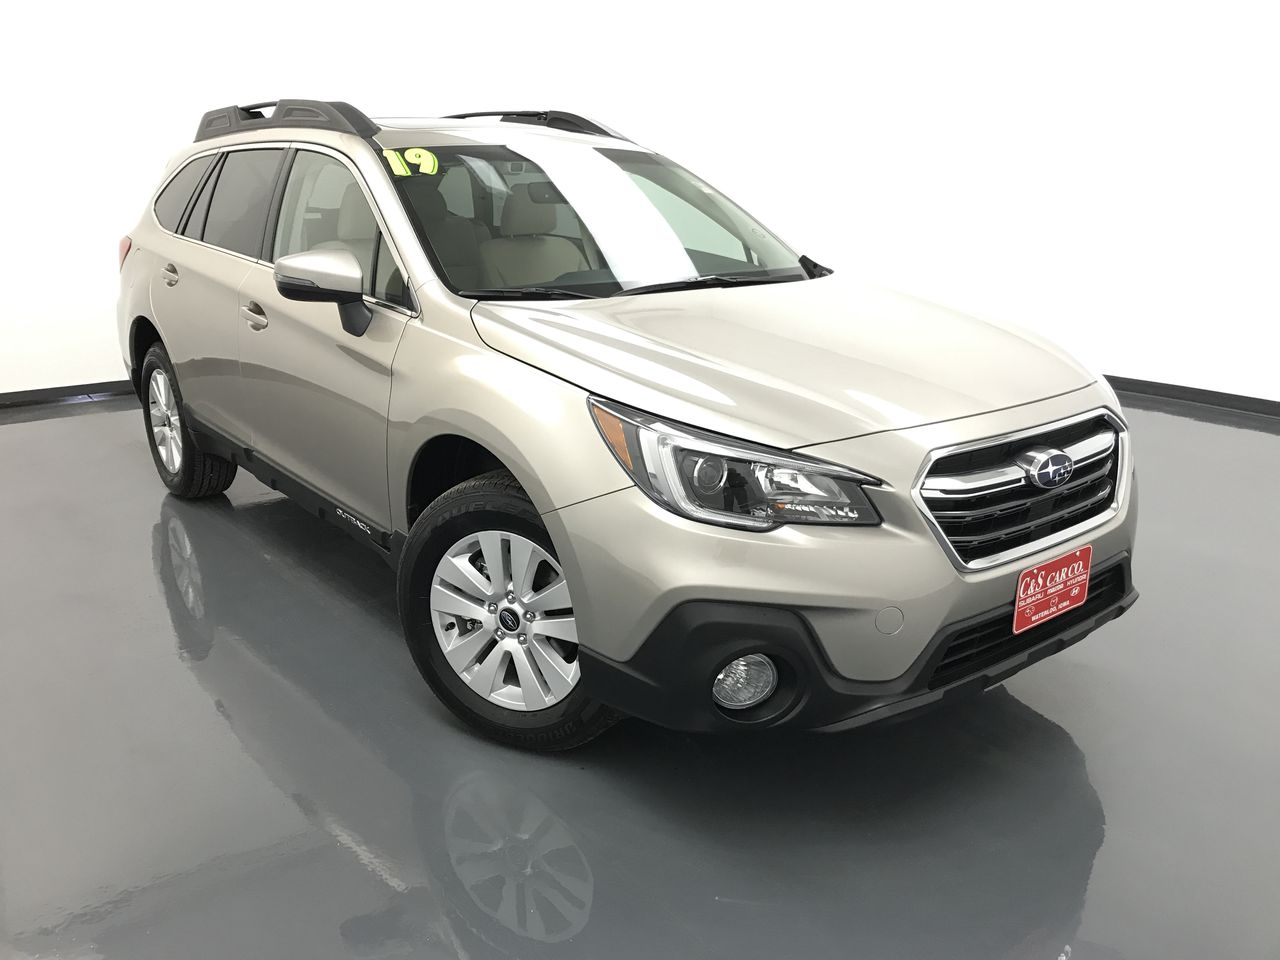 2019 Subaru Outback 2.5i Premium w/Eyesight  - SB7093  - C & S Car Company